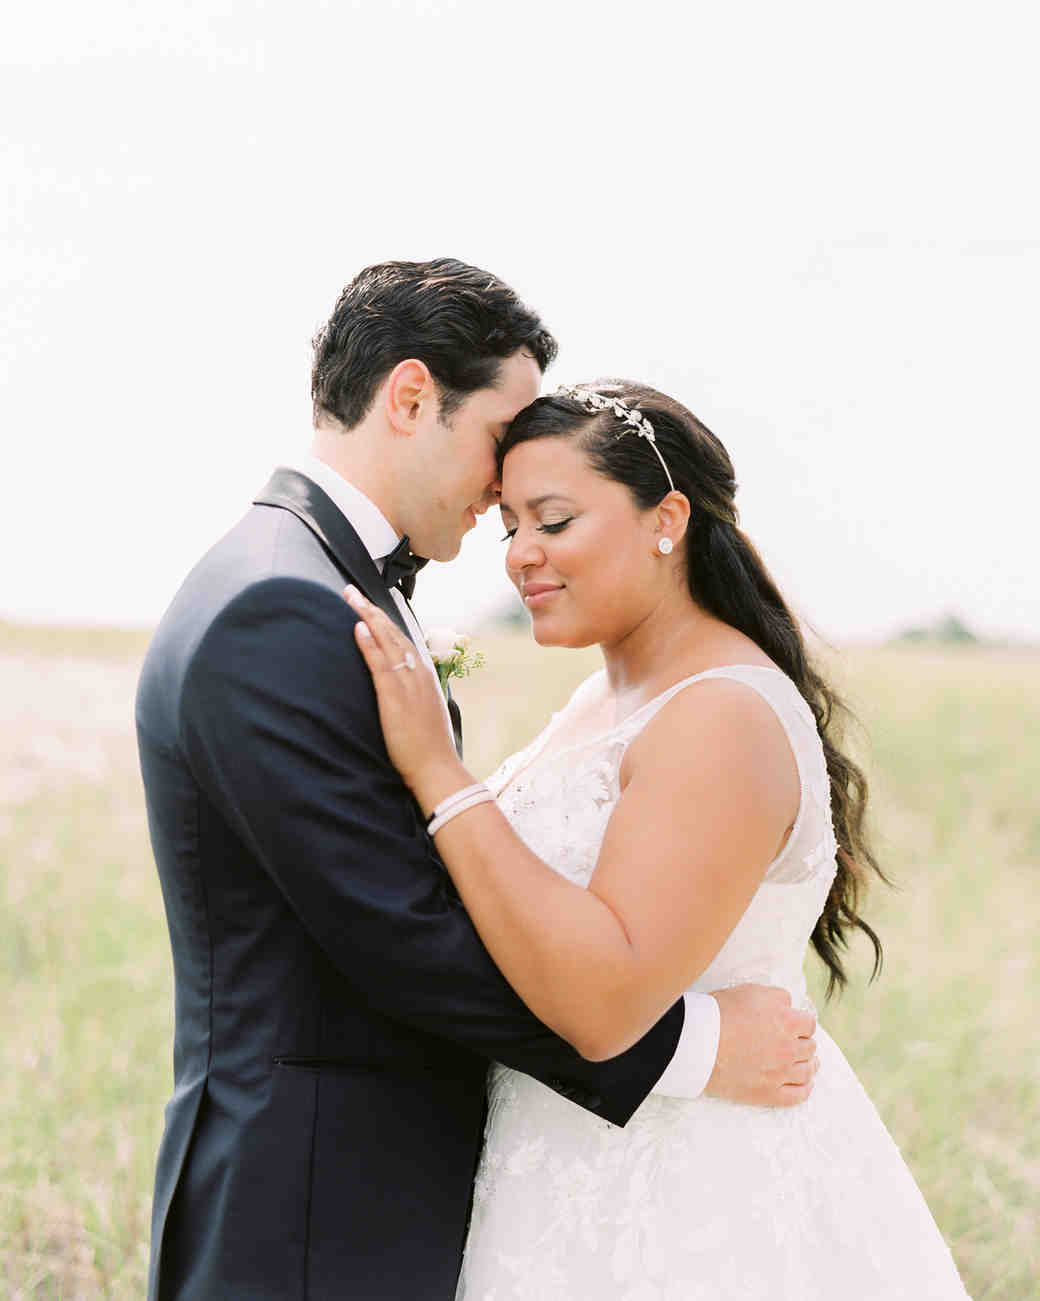 bride and groom embracing in field of tall grass